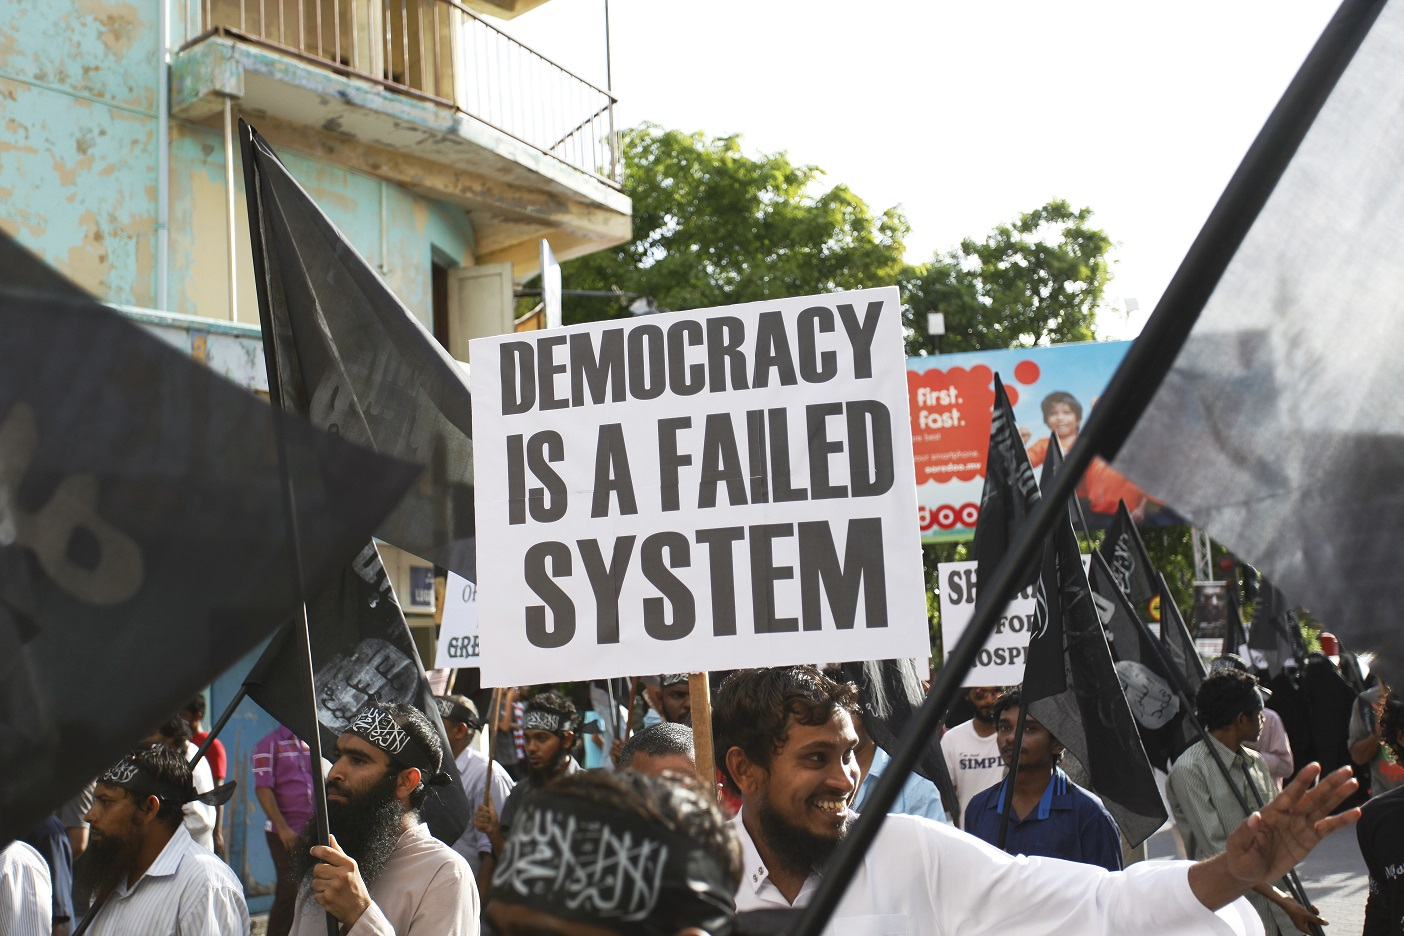 Protests in Maldives, 2014 (source)